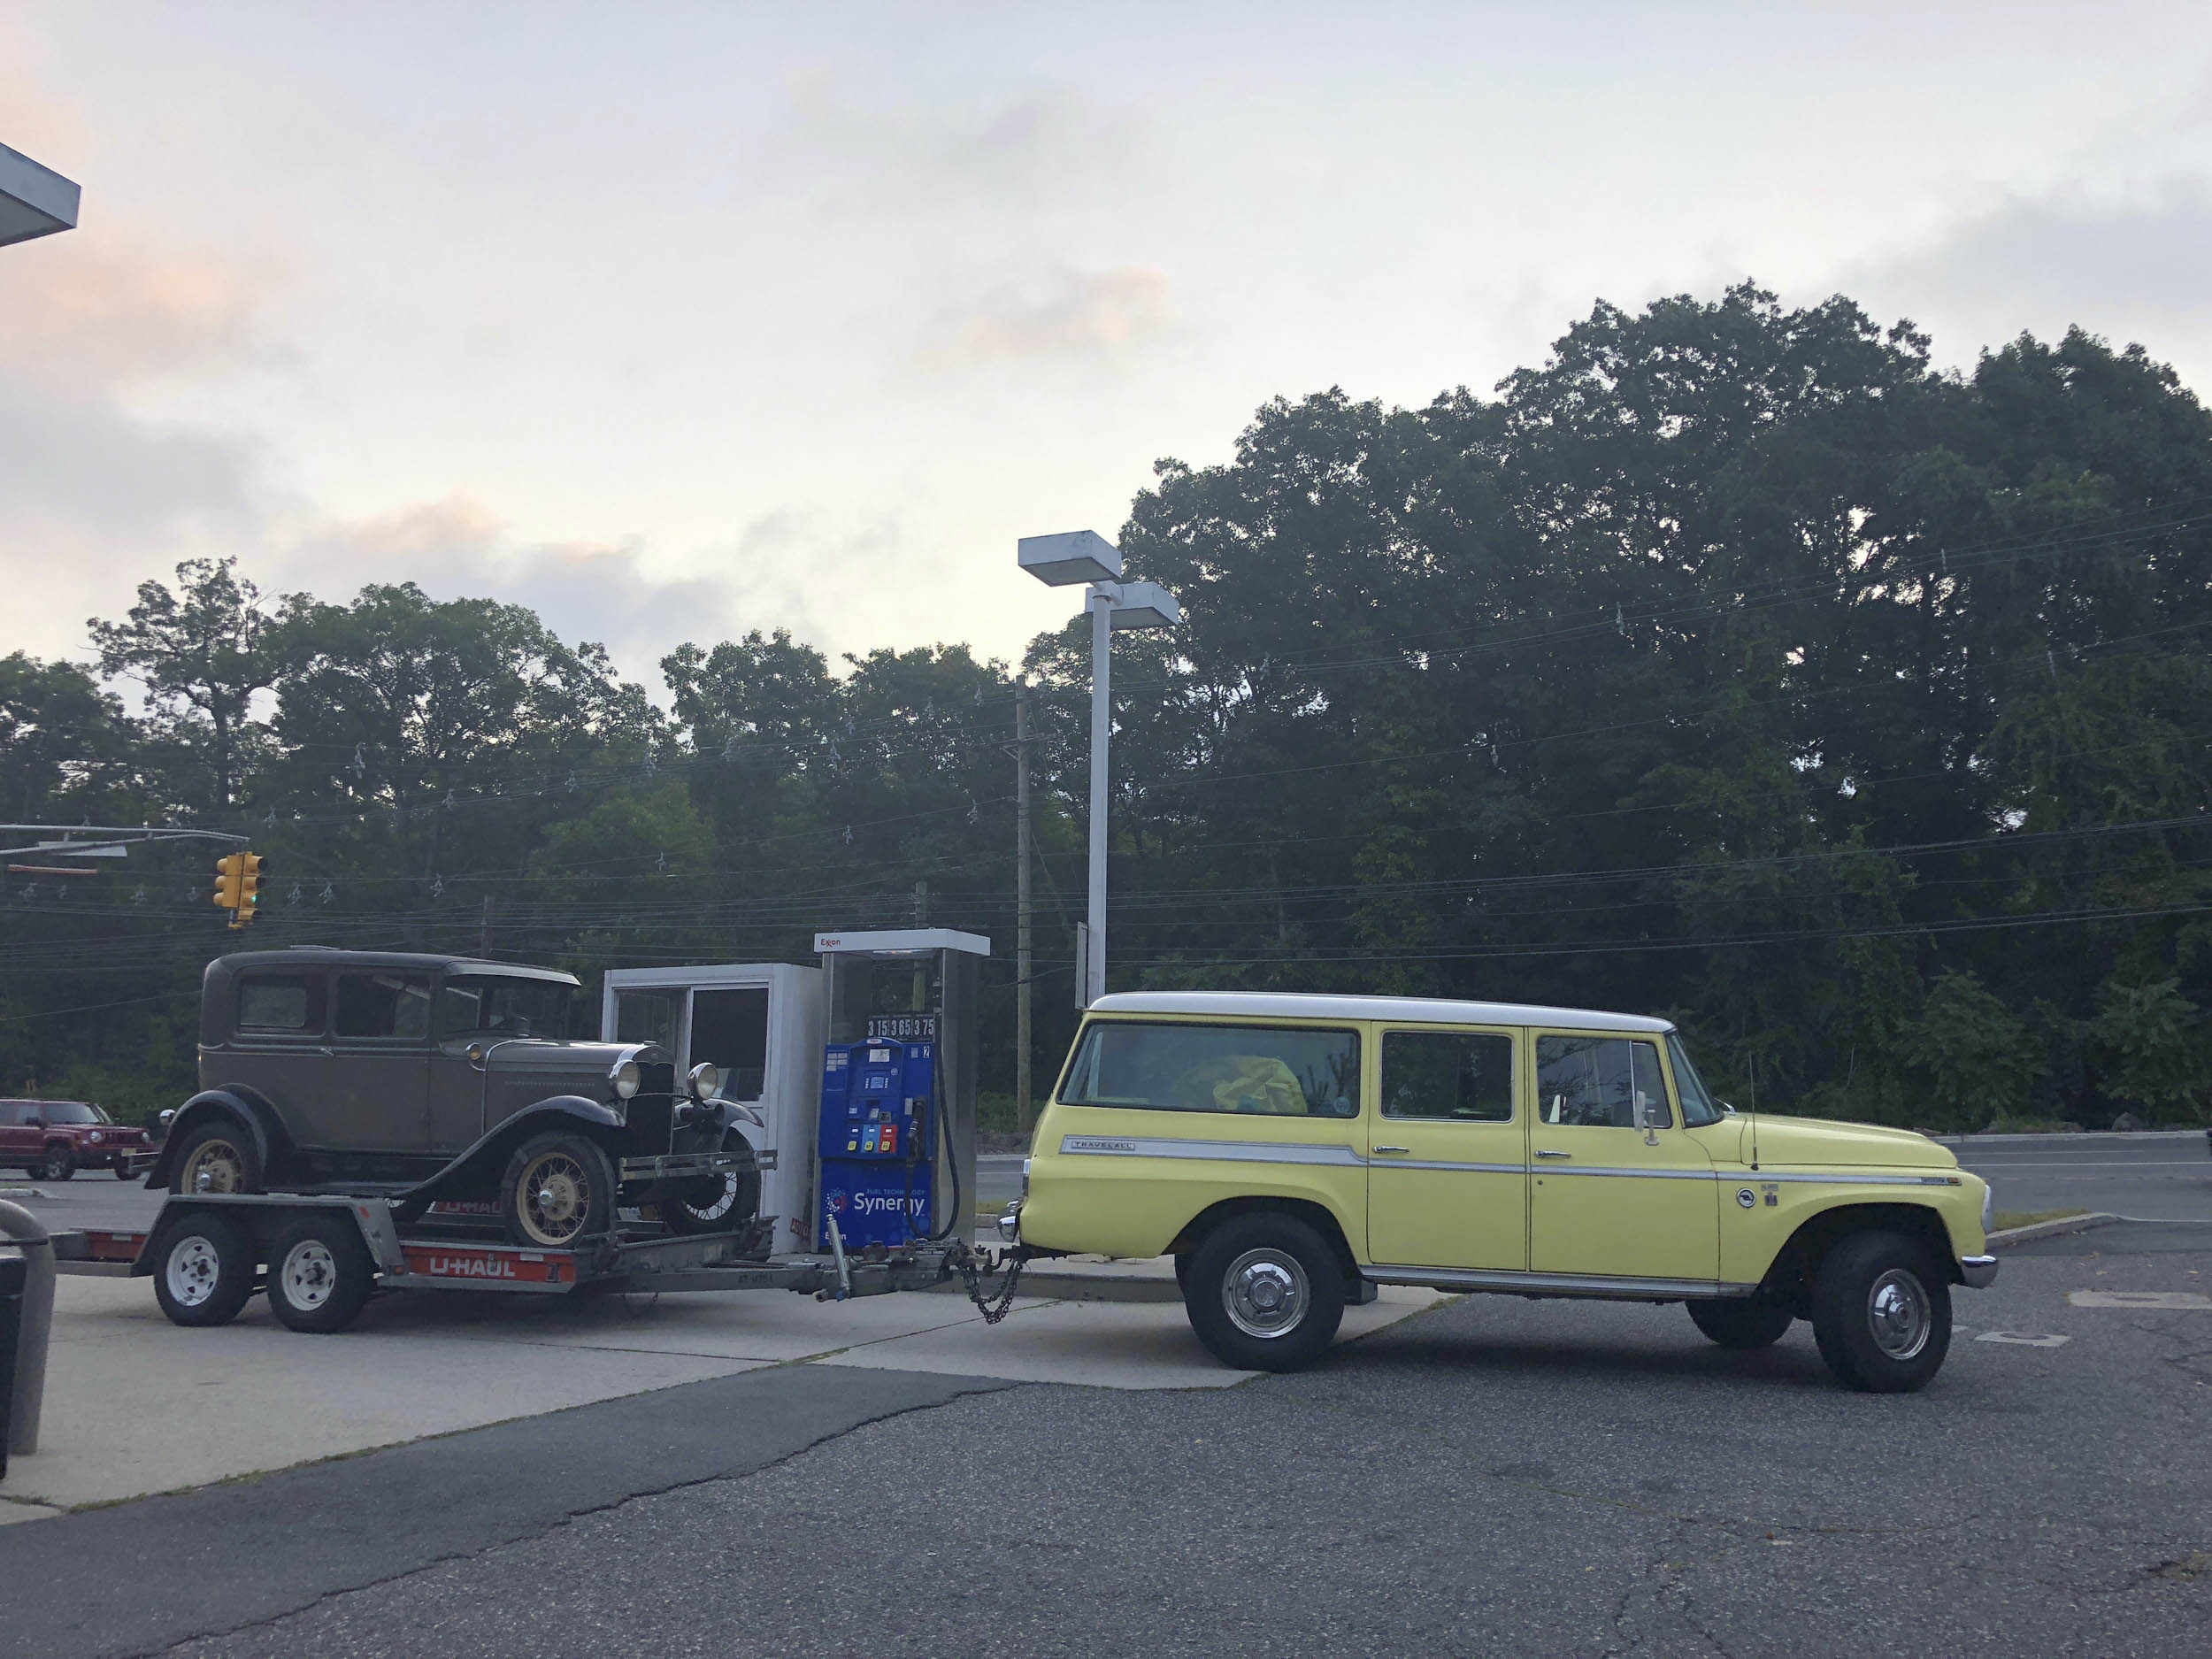 1968 International Travelall towing 1931 Model A Tudor (one of two identical booked for production,) gassing up while headed to set of The Marvelous Mrs. Maisel, Englewood Cliffs, NJ